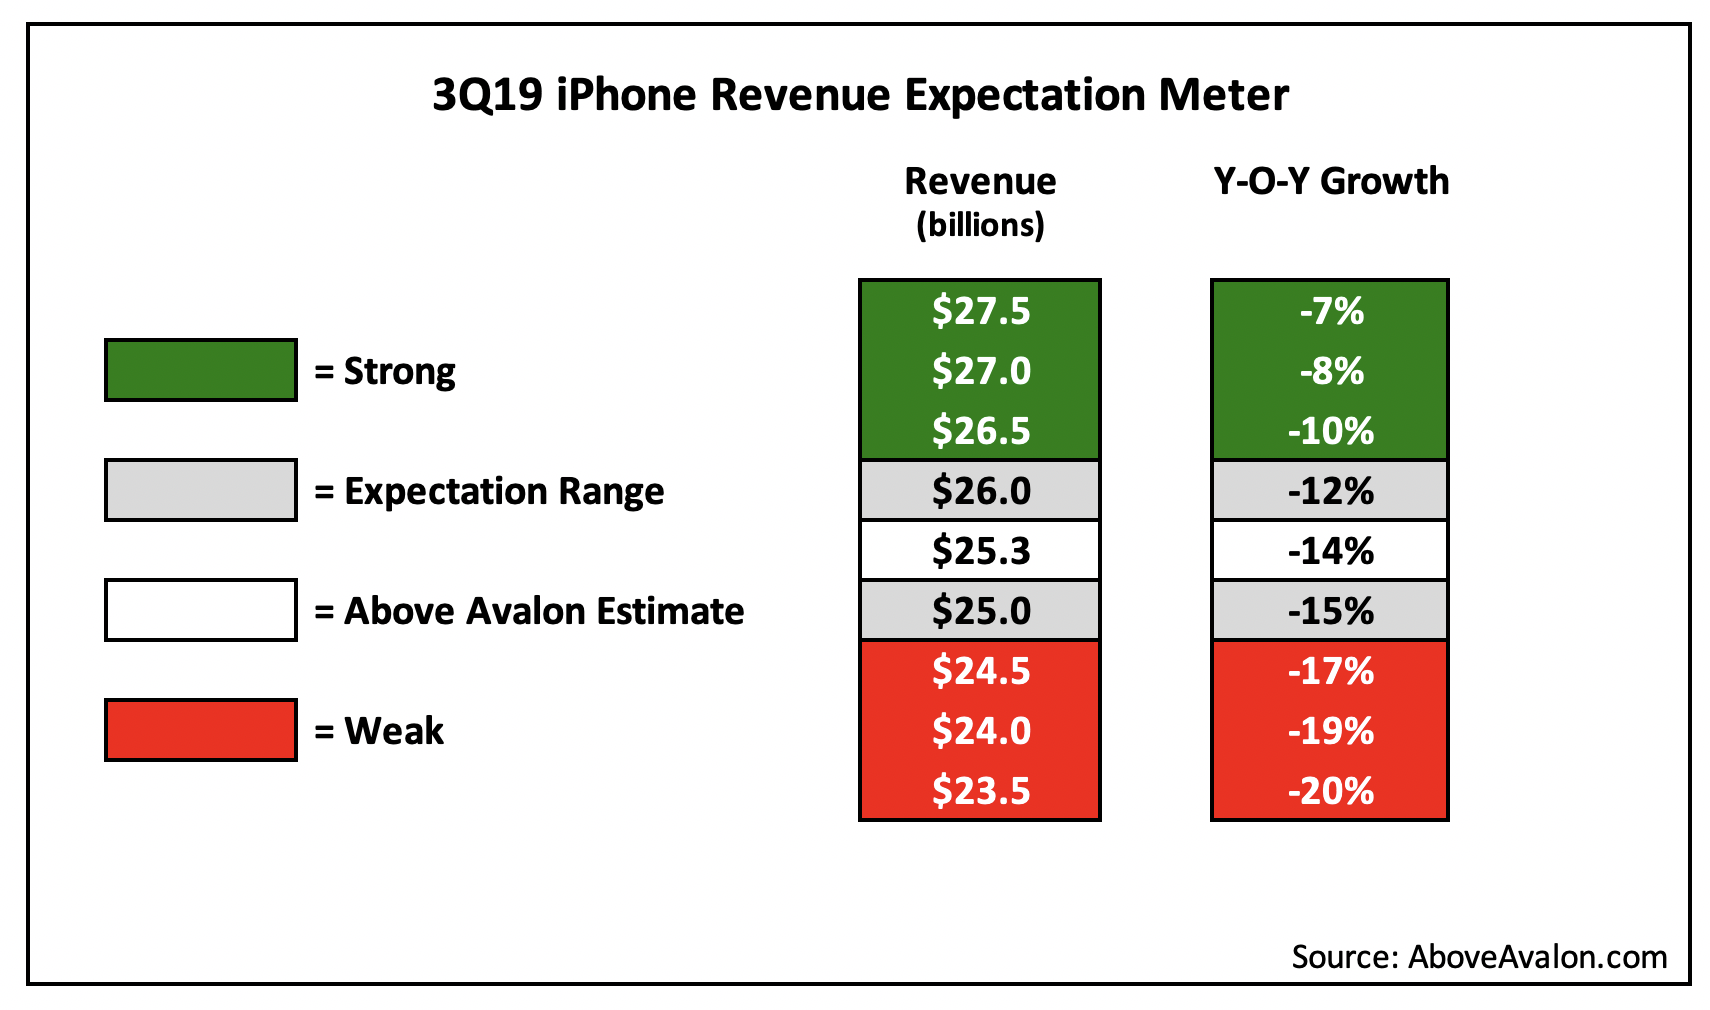 3Q19 iPhone Revenue Expectation Meter (Above Avalon)